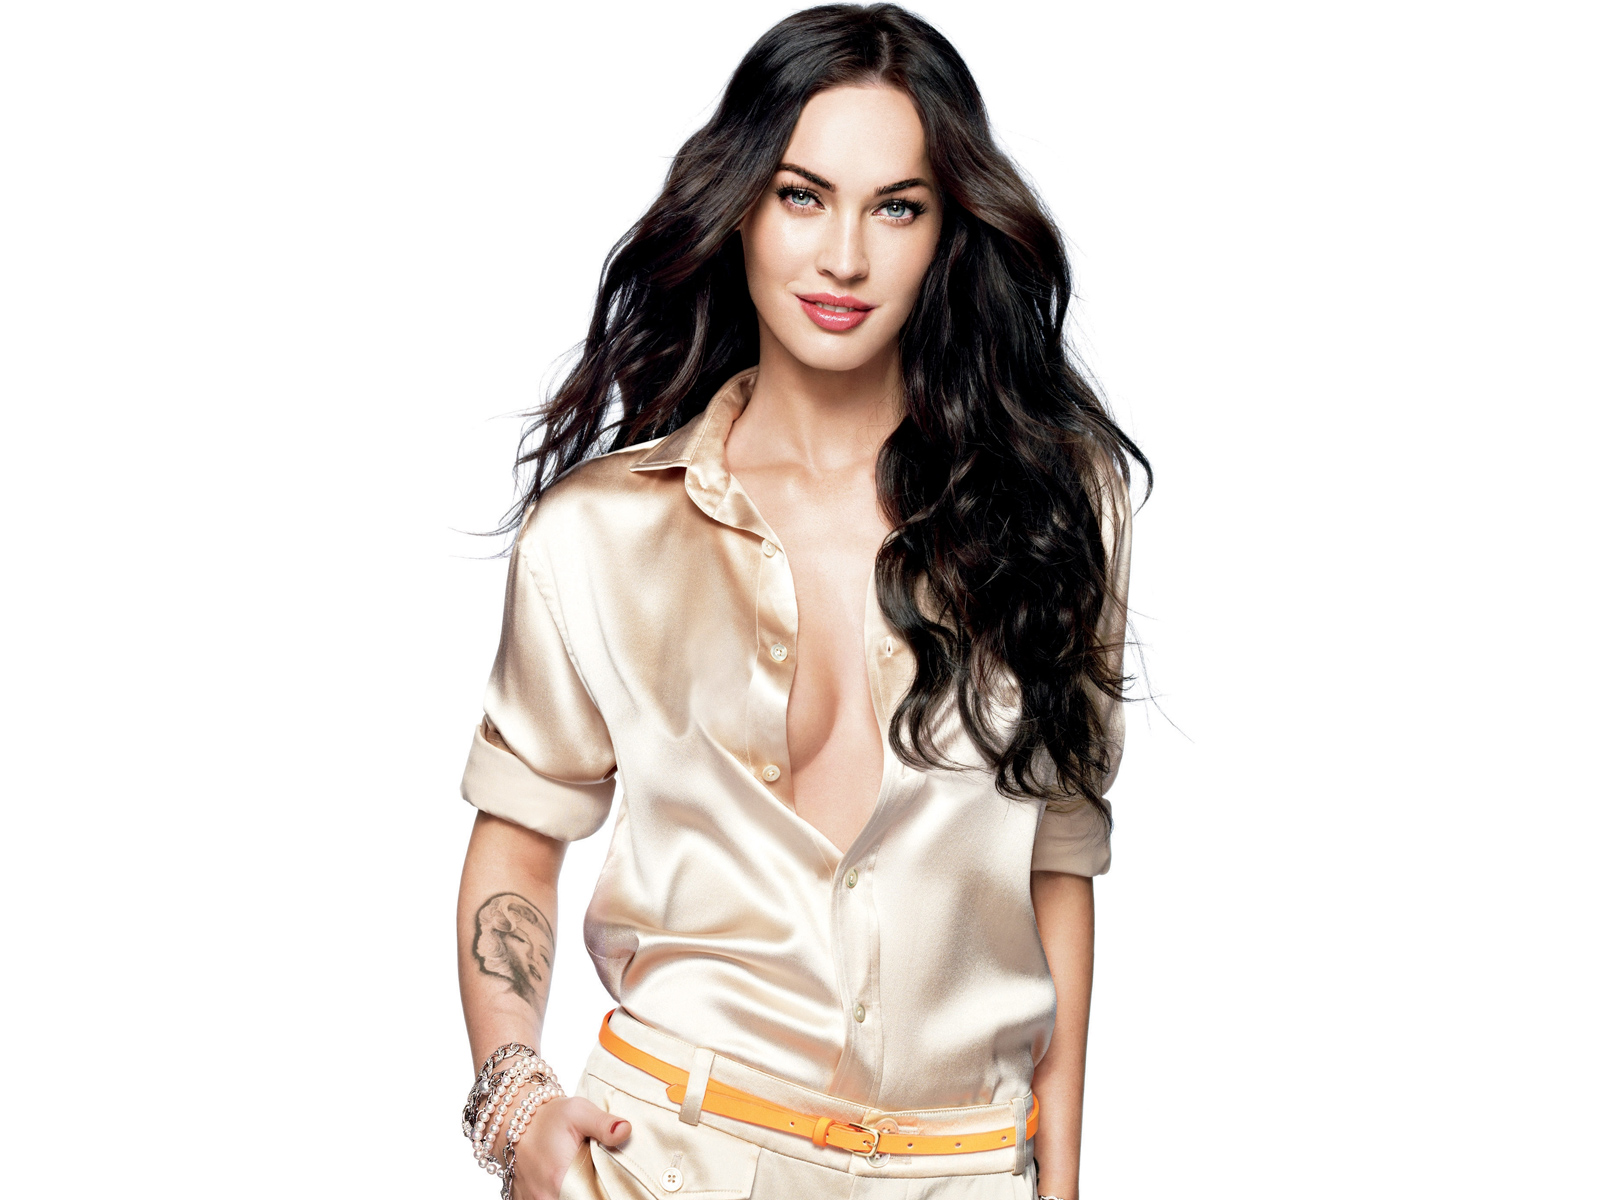 Get Best Latest Photos of Hot Megan Fox. Megan Fox Photo Gallery, Latest Megan Fox Pictures, Pics of Megan Fox, megan fox hot pics, megan fox tattoos Photos, hot pictures of megan fox.